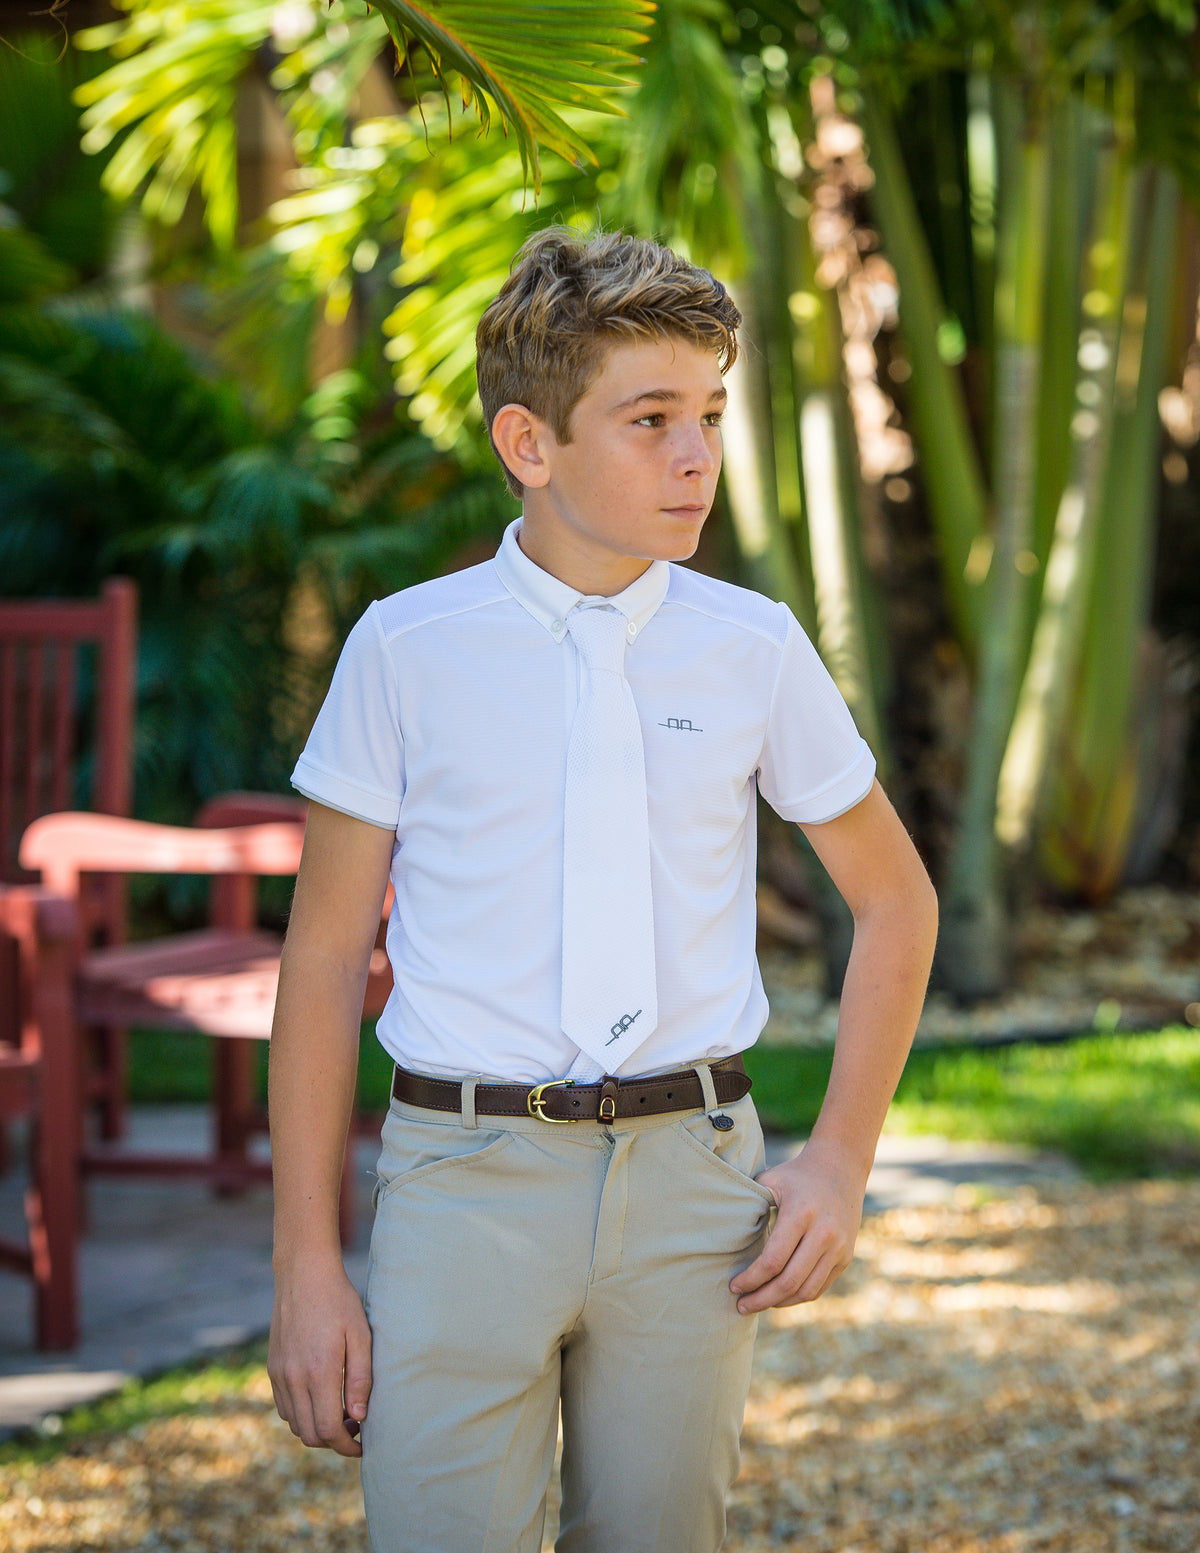 The Alessandro Albanese boys shirt is here and it's awesome!  Check out the Hugo Clean/Cool Boys Short Sleeve Shirt!  Lightweight / Cool and breathable Easy care  / Machine washable